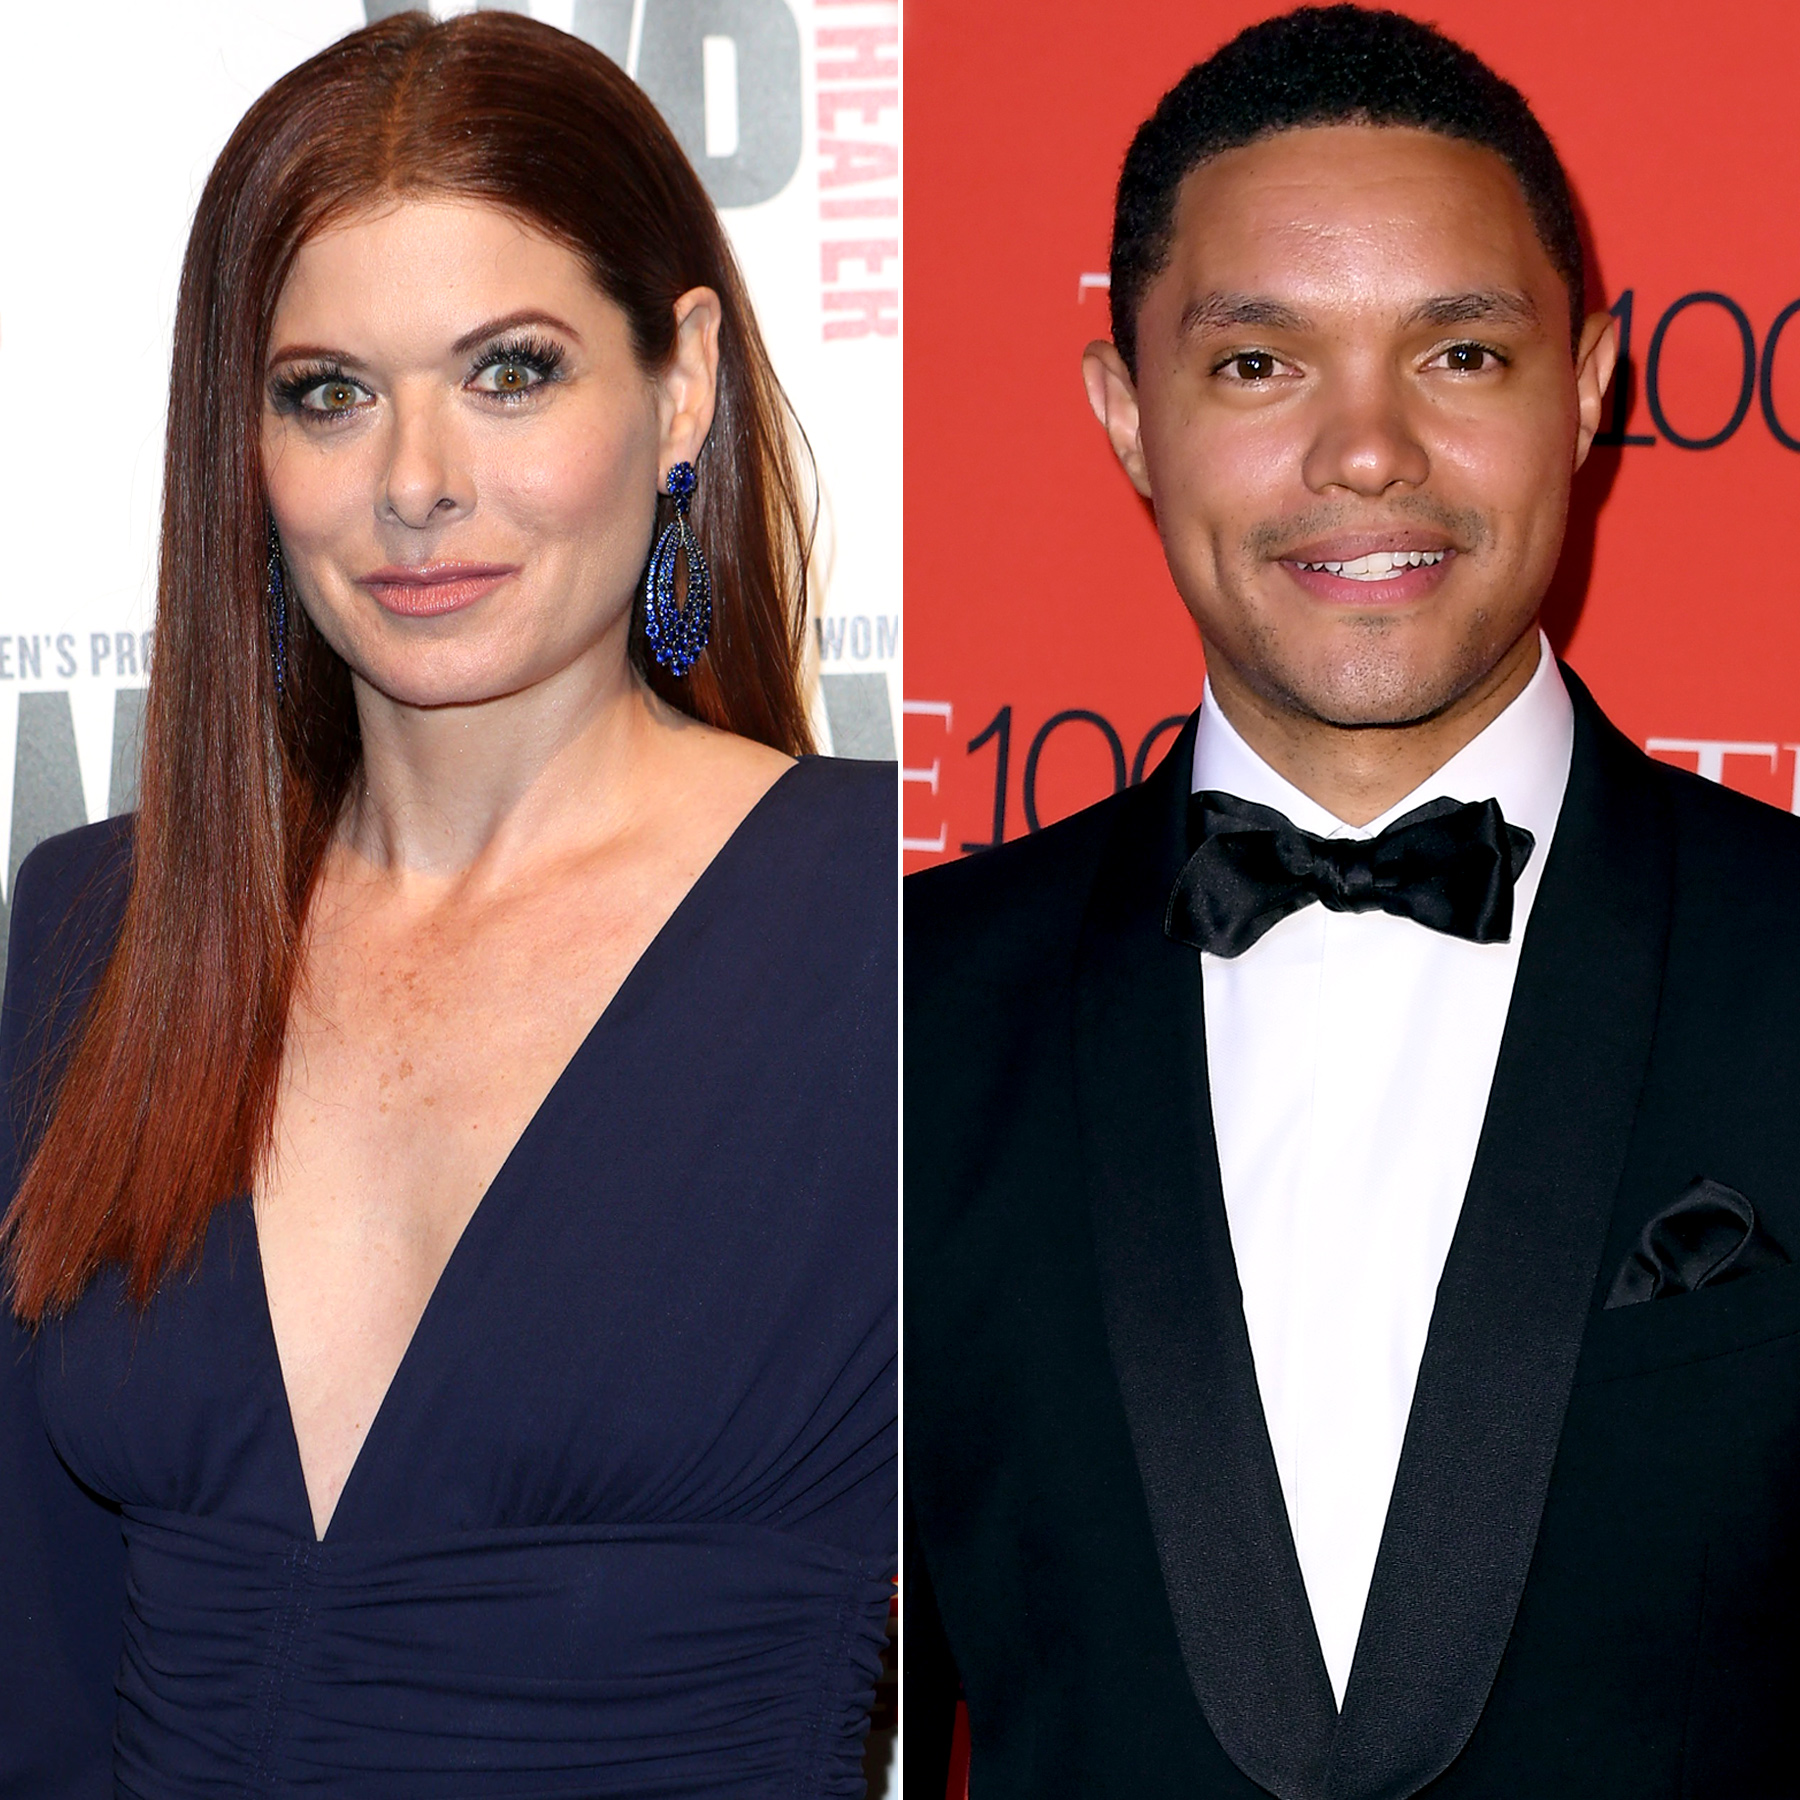 Debra Messing and Trevor Noah